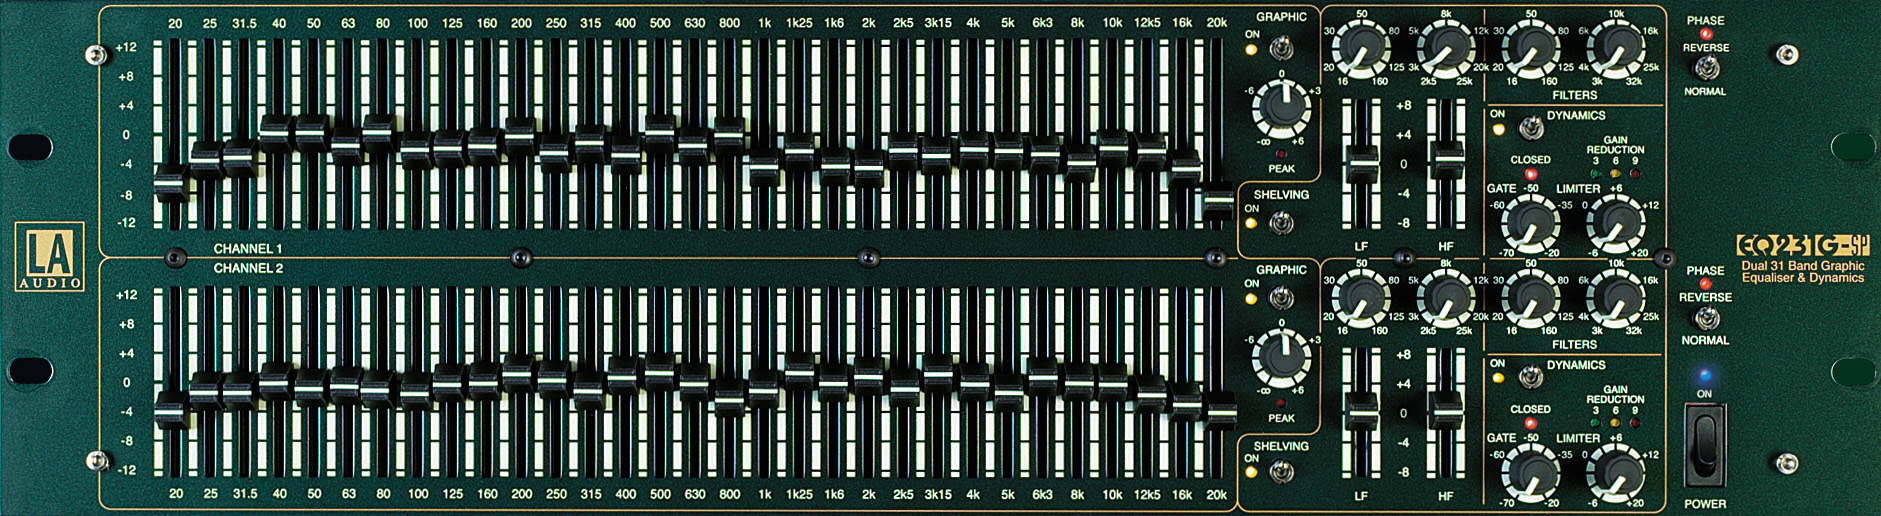 Equalizer Circuit Diagram Likewise 10 Band Graphic Equalizer Circuit